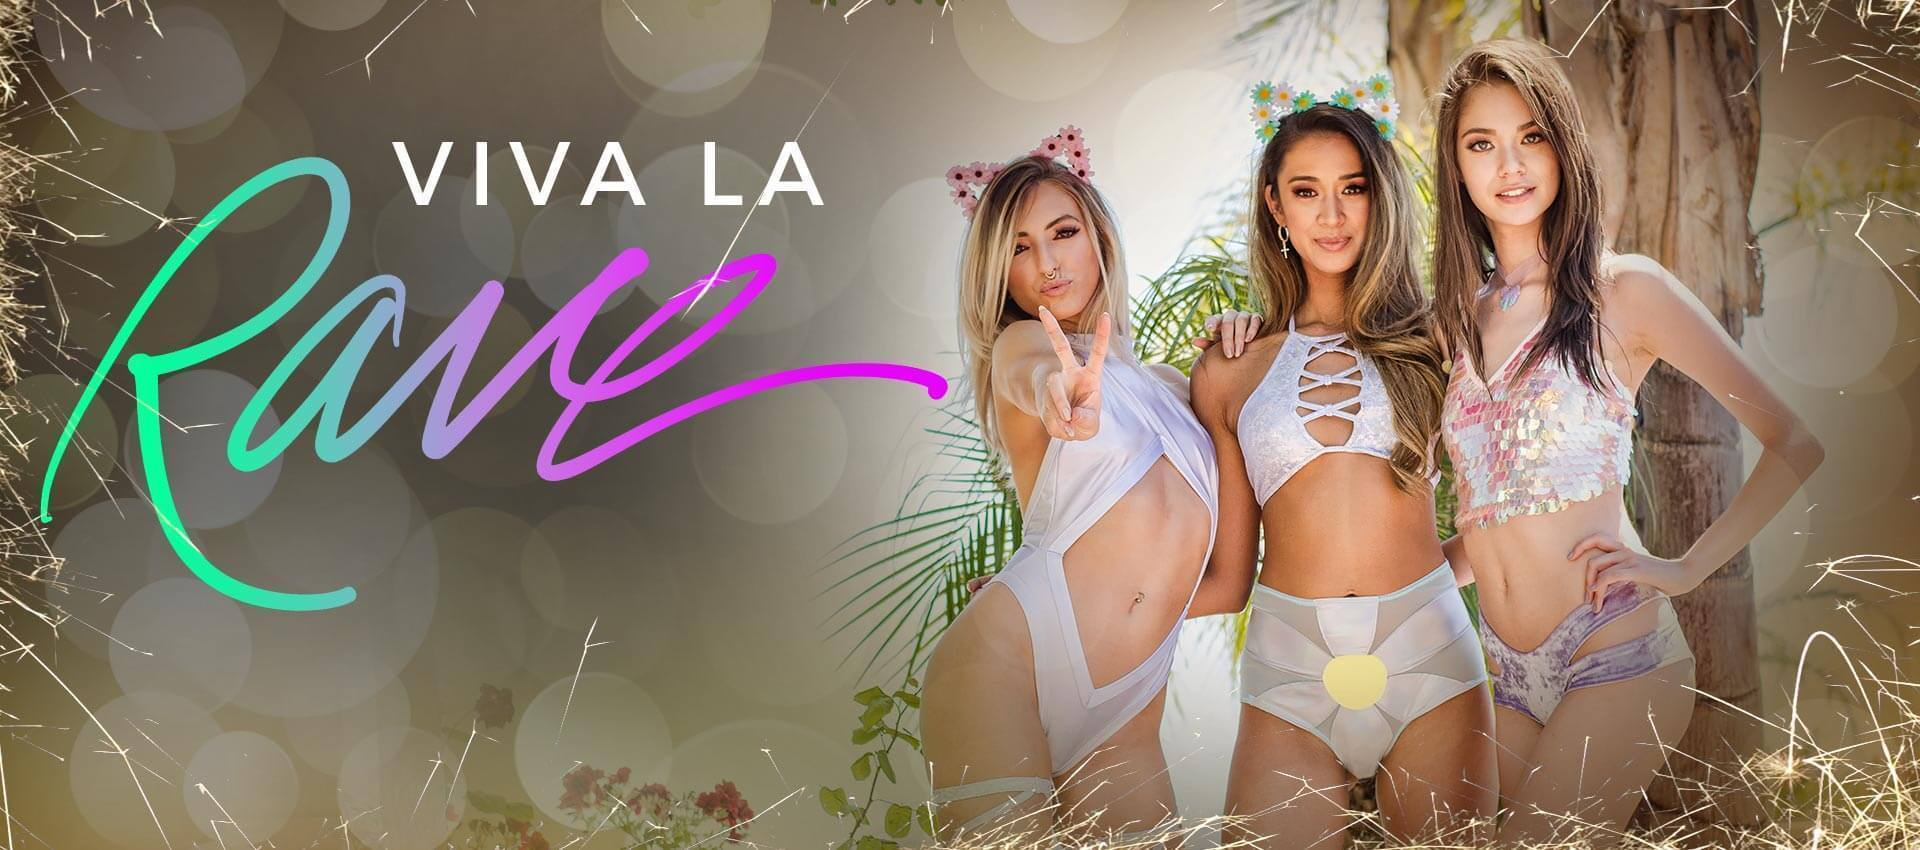 INTRODUCING VIVA LA RAVE!